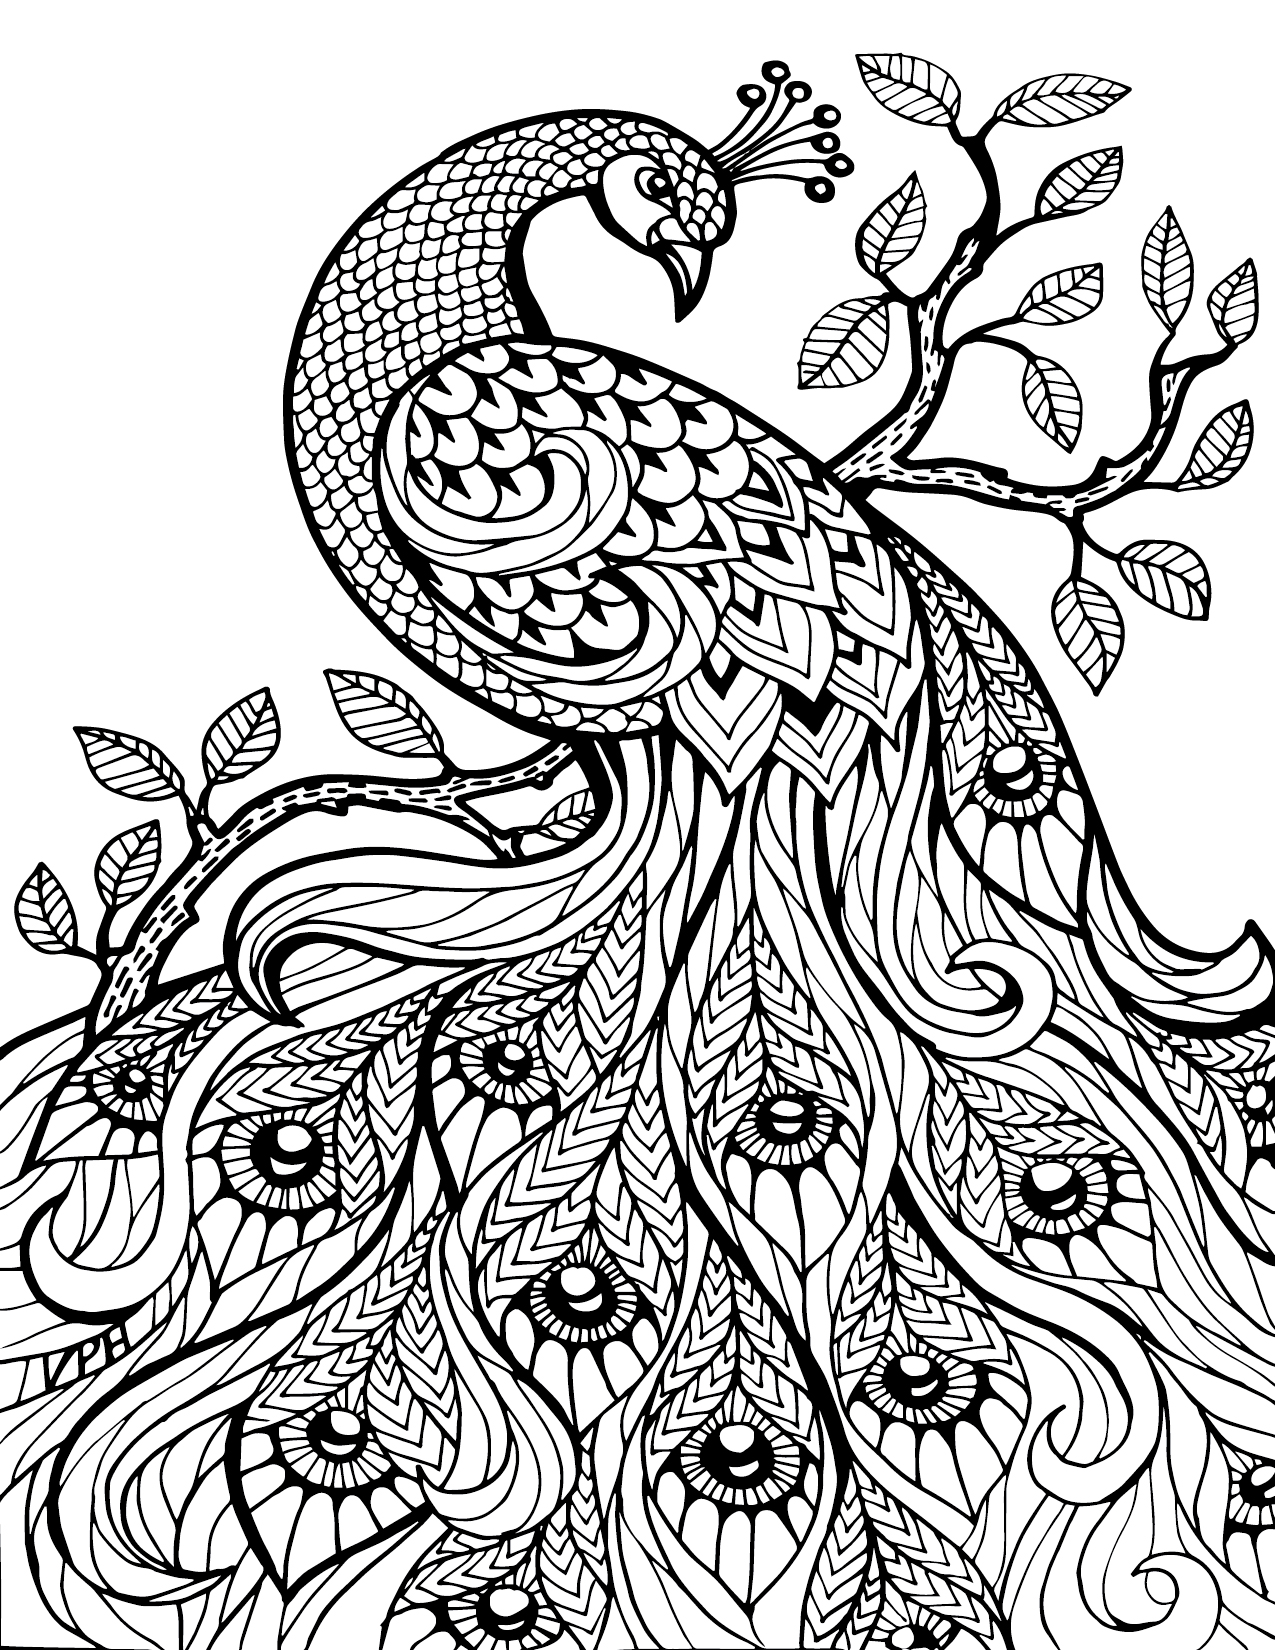 Adult Coloring for Mental Health | Mental Health America